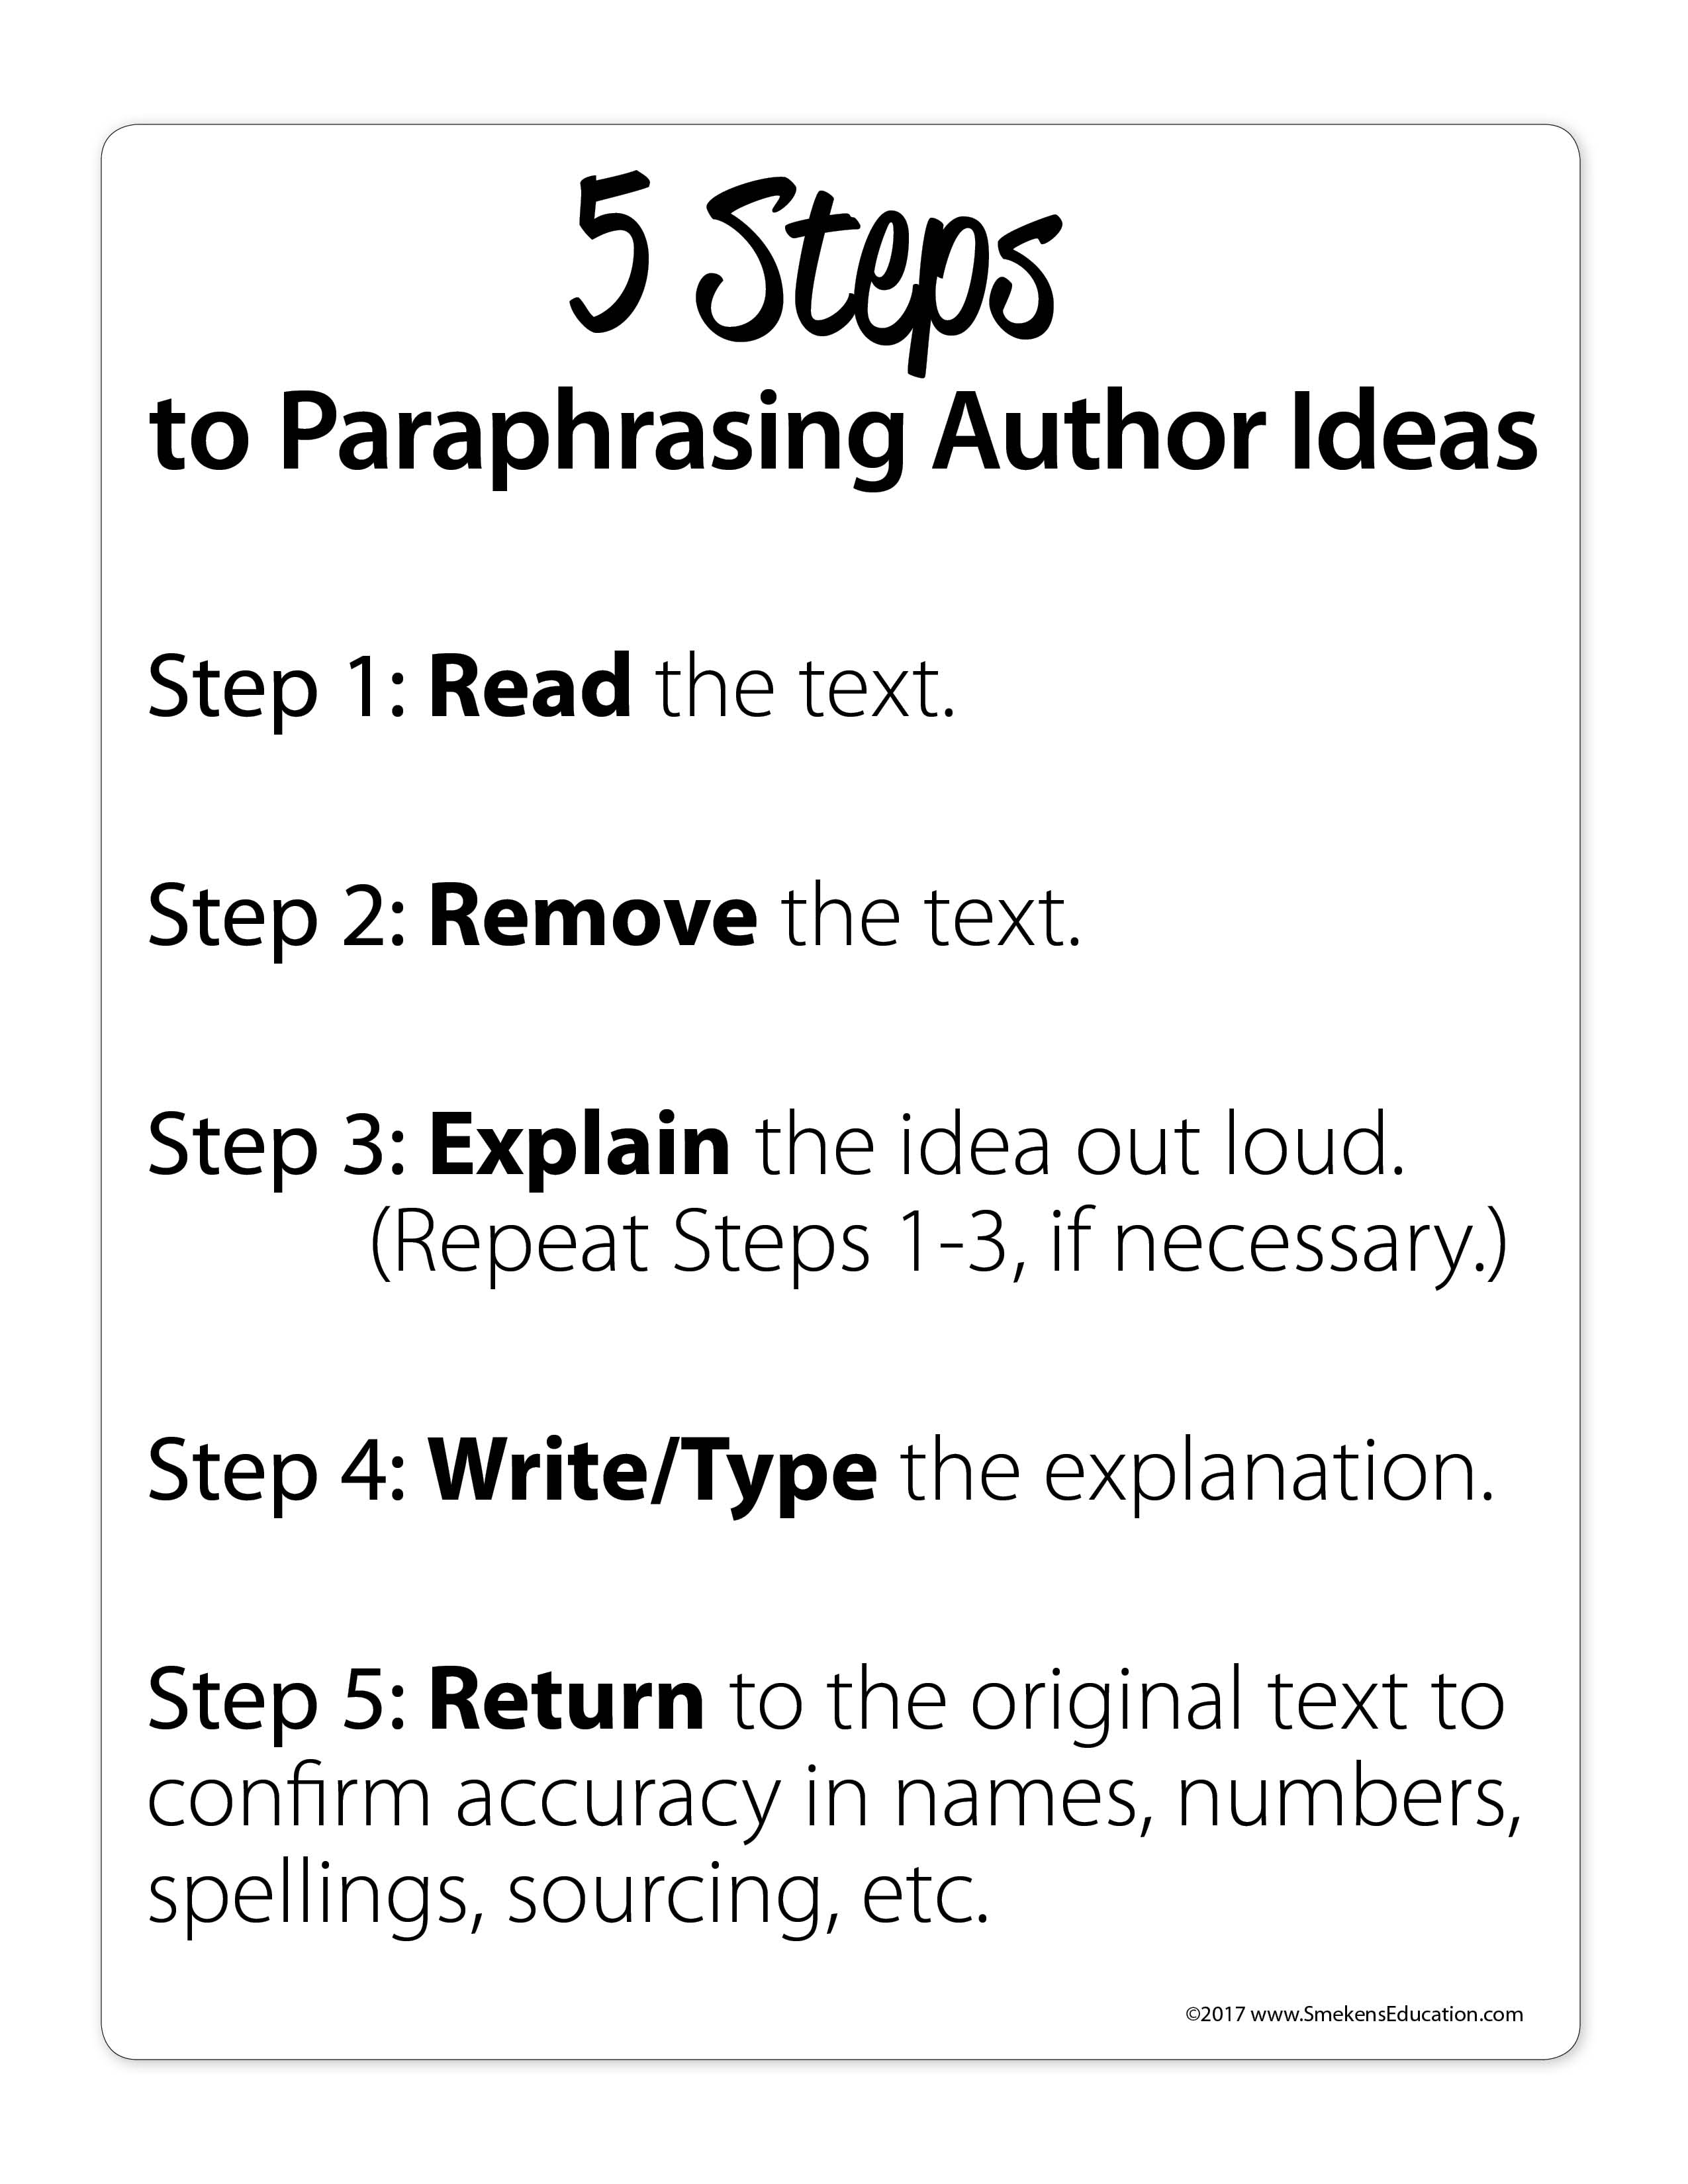 5 Steps to Paraphrasing Author Ideas